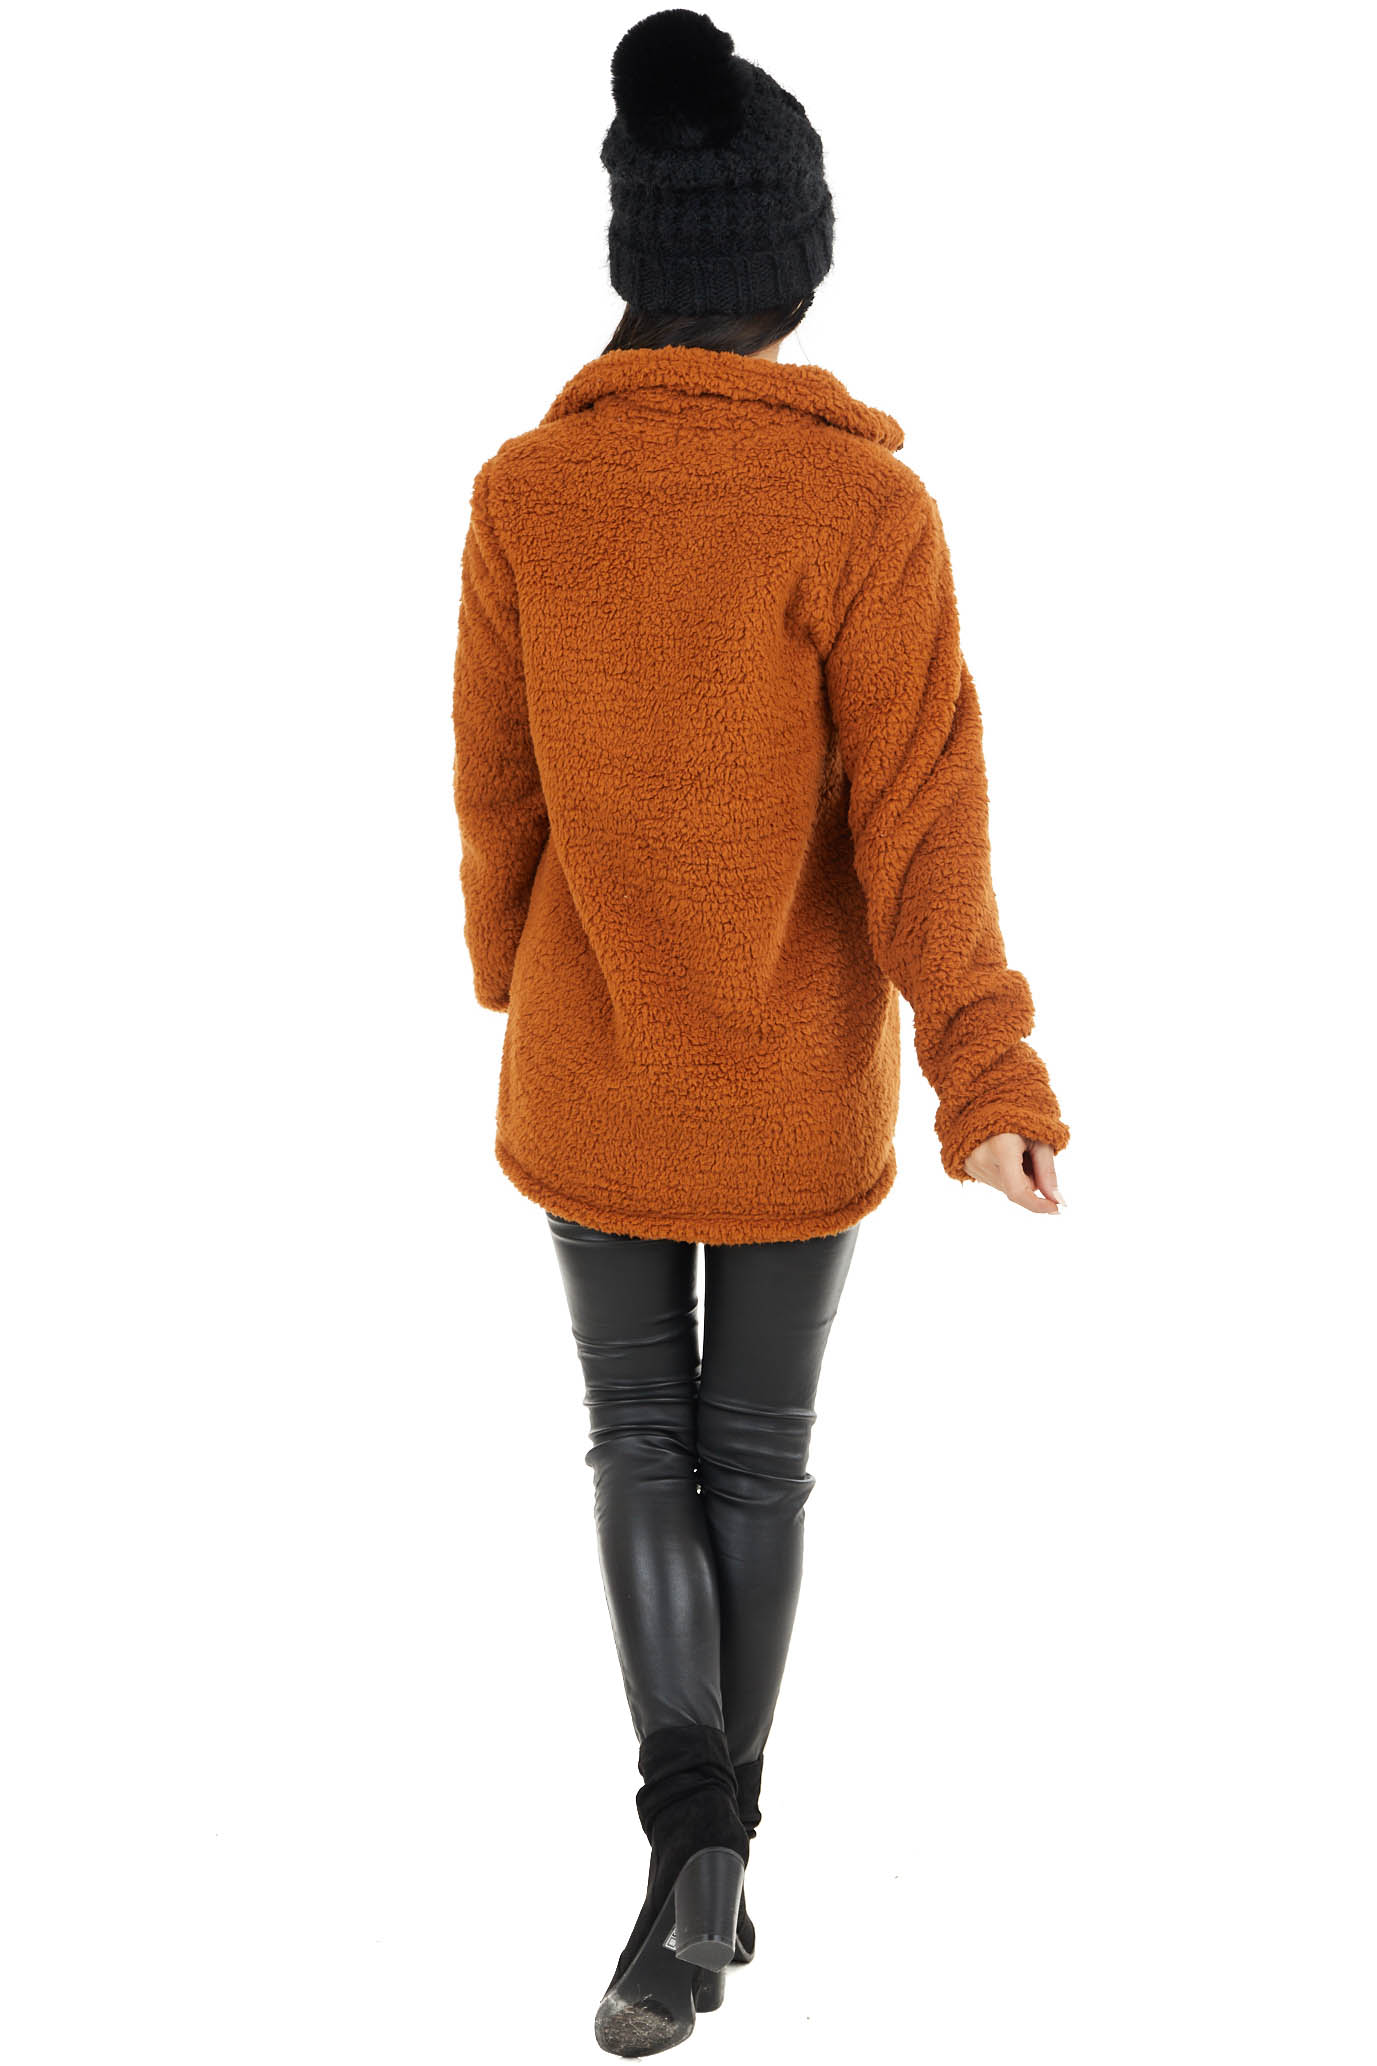 Caramel Zip Up High Neckline Sherpa Jacket with Pockets